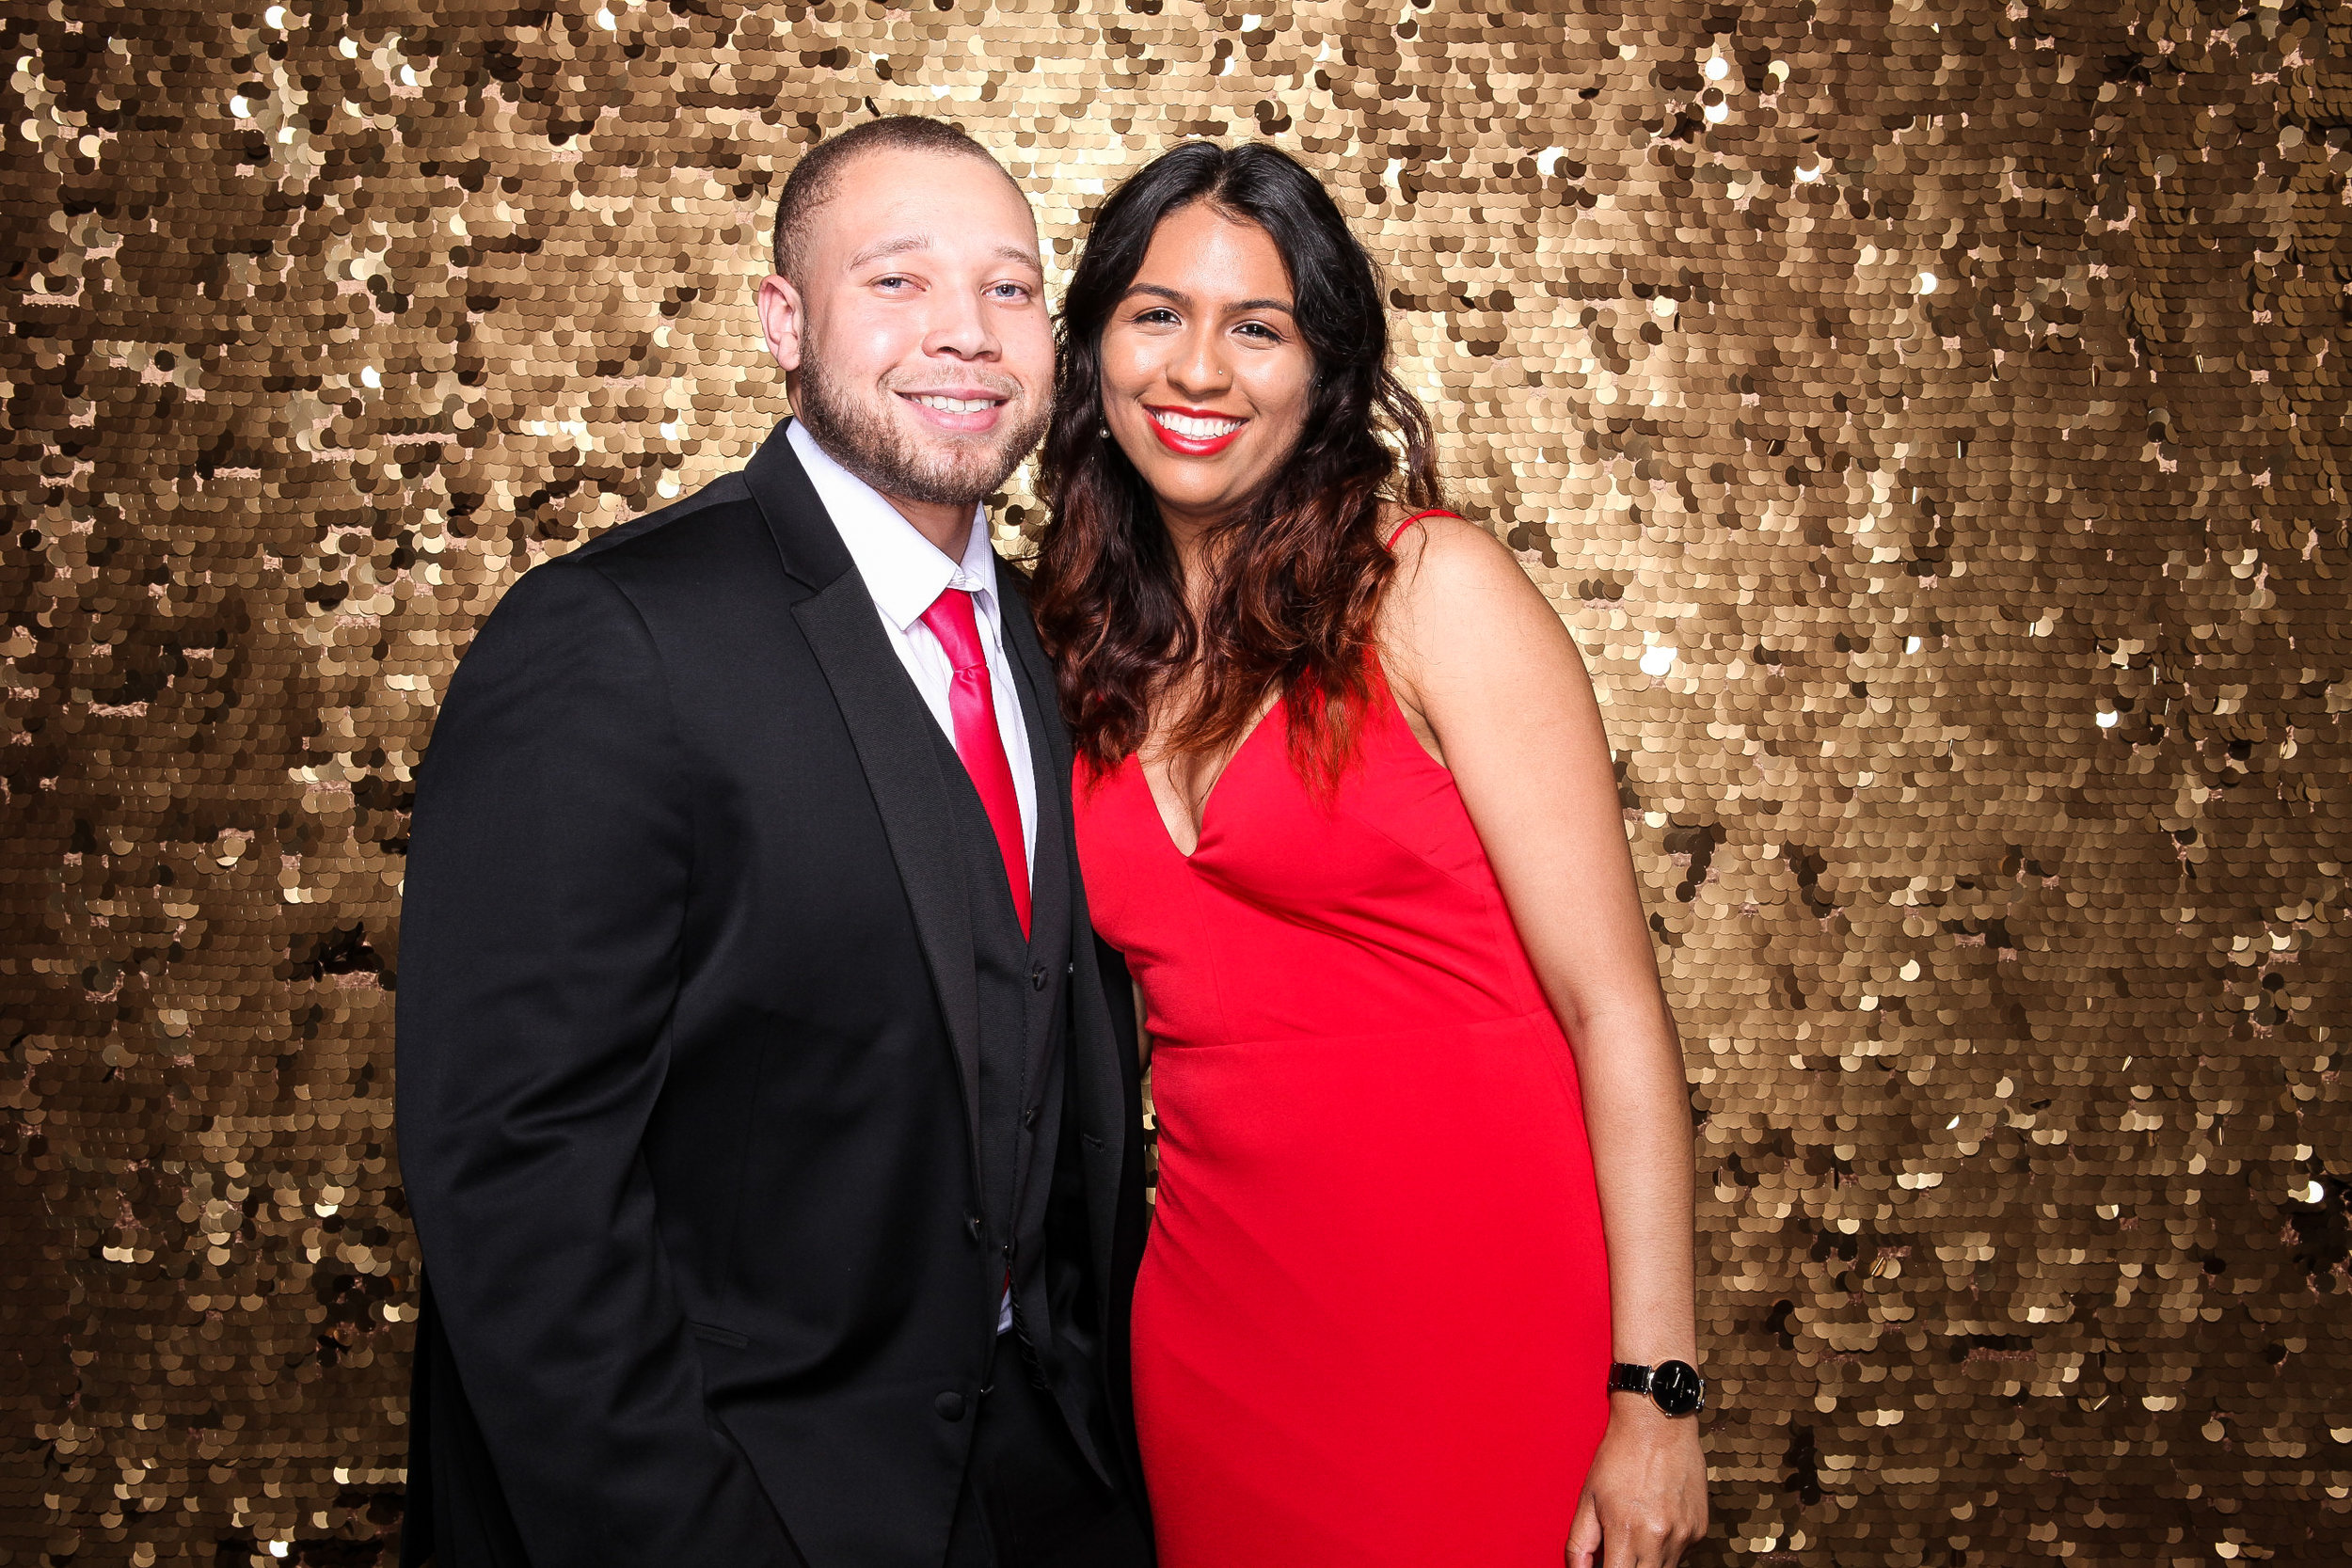 20190503_Adelphi_Senior_Formal-053.jpg